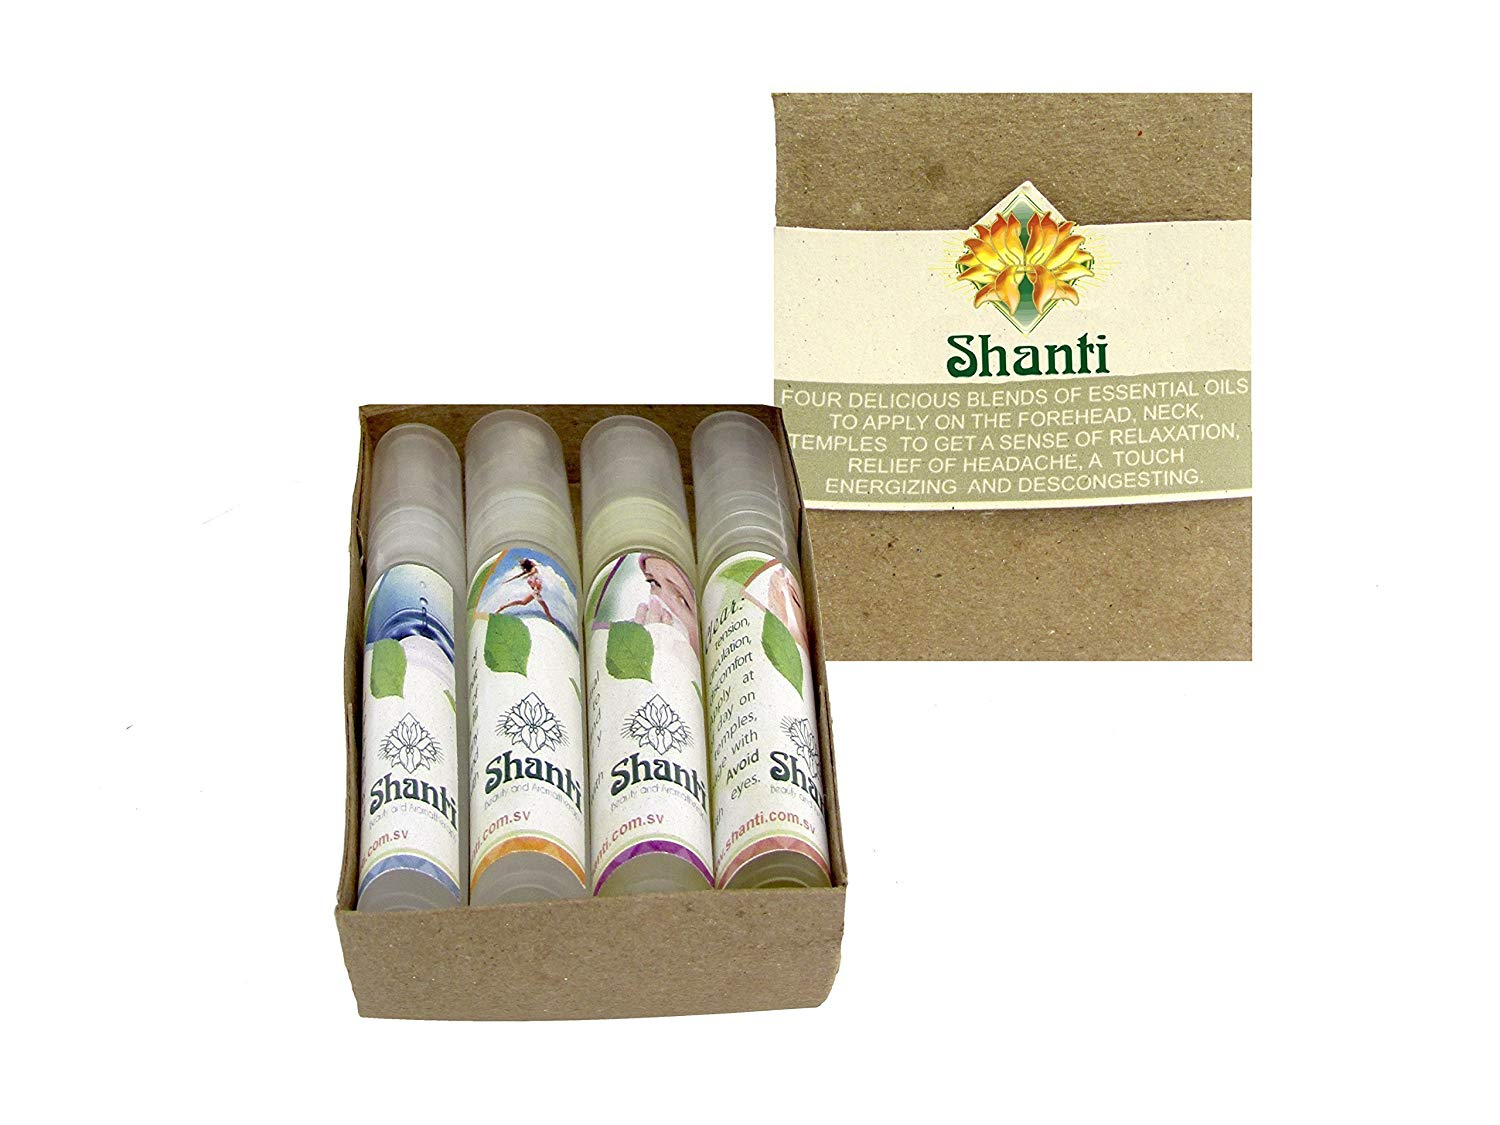 Essential Oil Blends Kit (Set Of 4): Pocket Size For Travel Aromatherapy, Made With Natural Organic Essential Oils -For Relaxation, Calming, Anxiety And Headache Relief